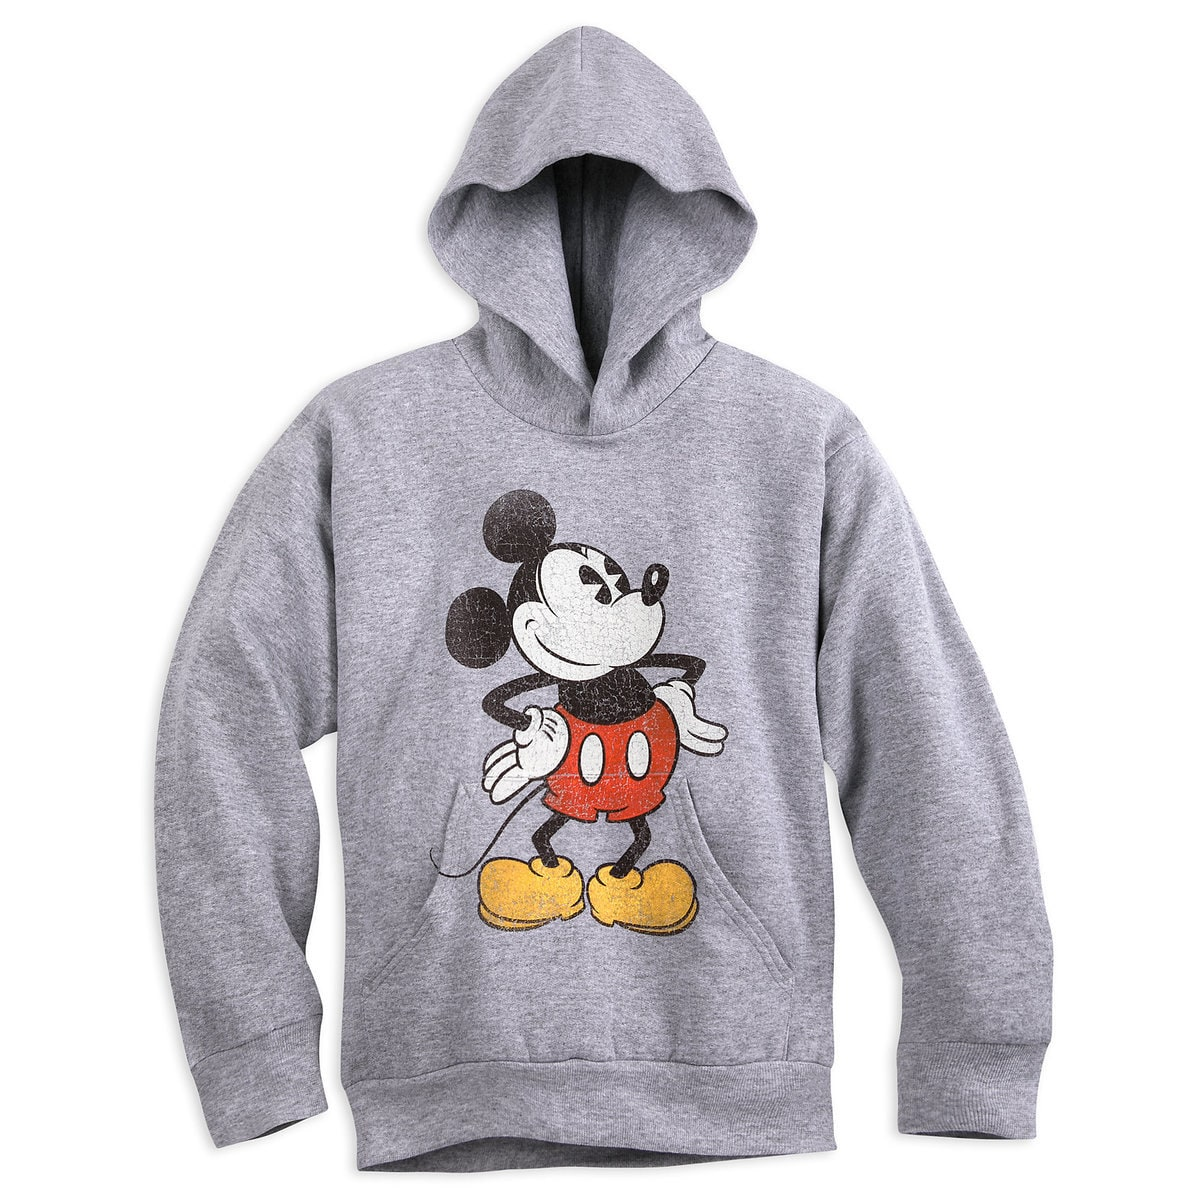 9cc40cf23 Mickey Mouse Hoodie for Kids